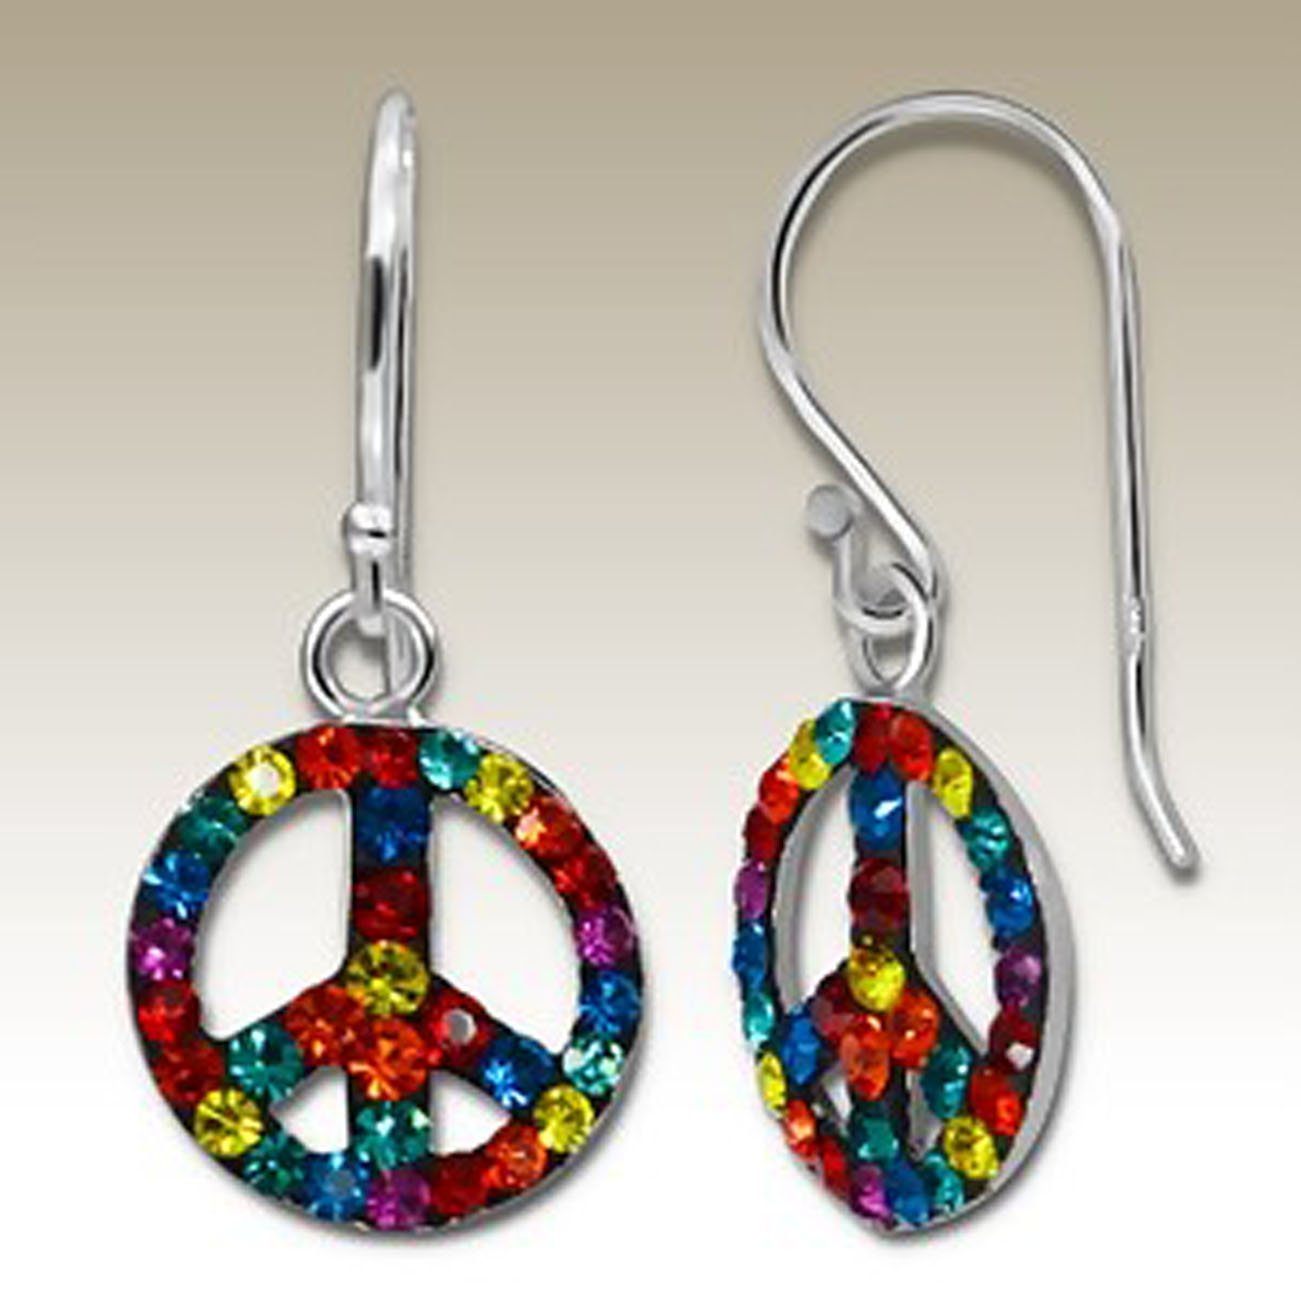 Peace Crystal Silver Earrings, Multicolour Crystals, Stering Silver (E15272)